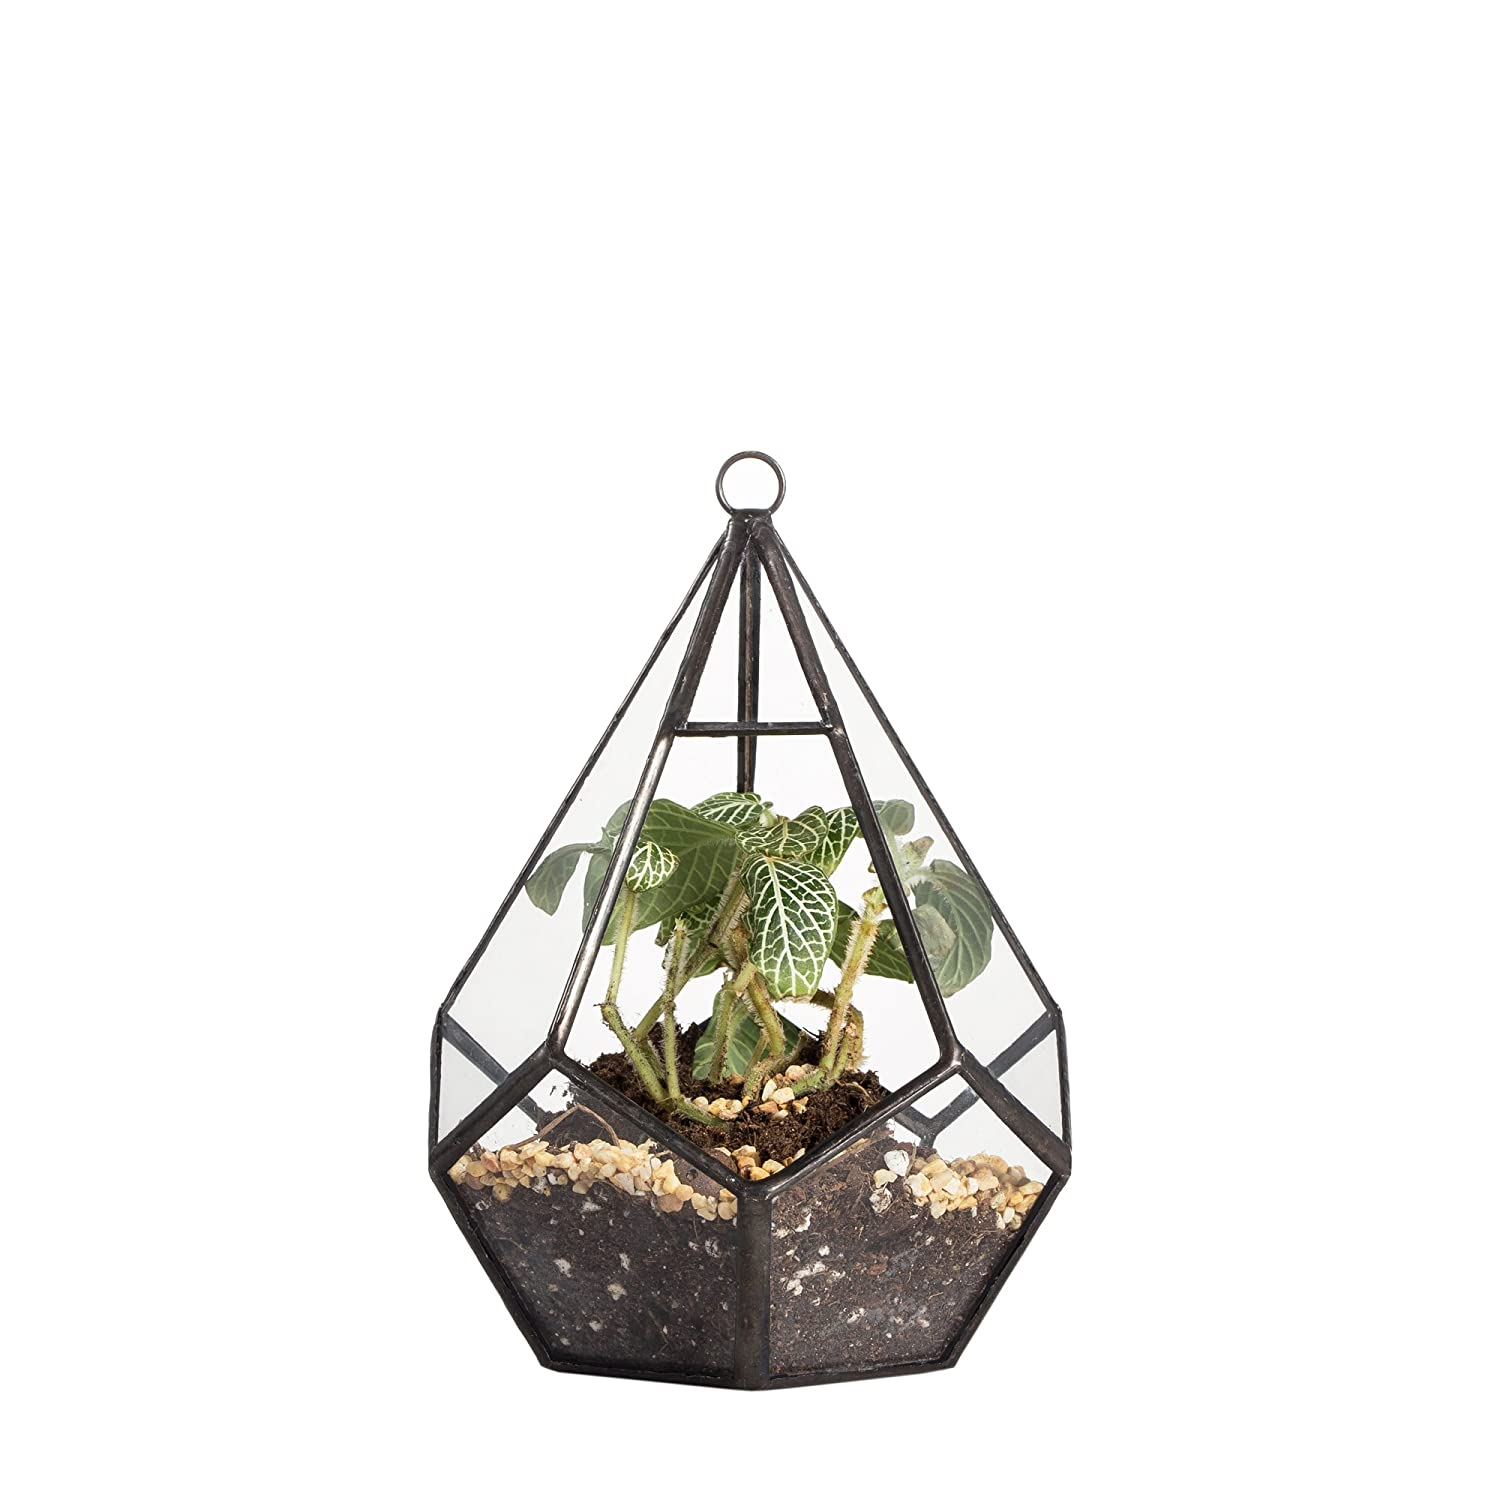 Modern Artistic Clear Hanging Air Planter Tear Diamond Glass Geometric Terrarium Small 11cm x 11cm x 13.5cm Clear Framed for Succulents Cacti Fern by NCYP Zhongpengcheng 20160220005_S